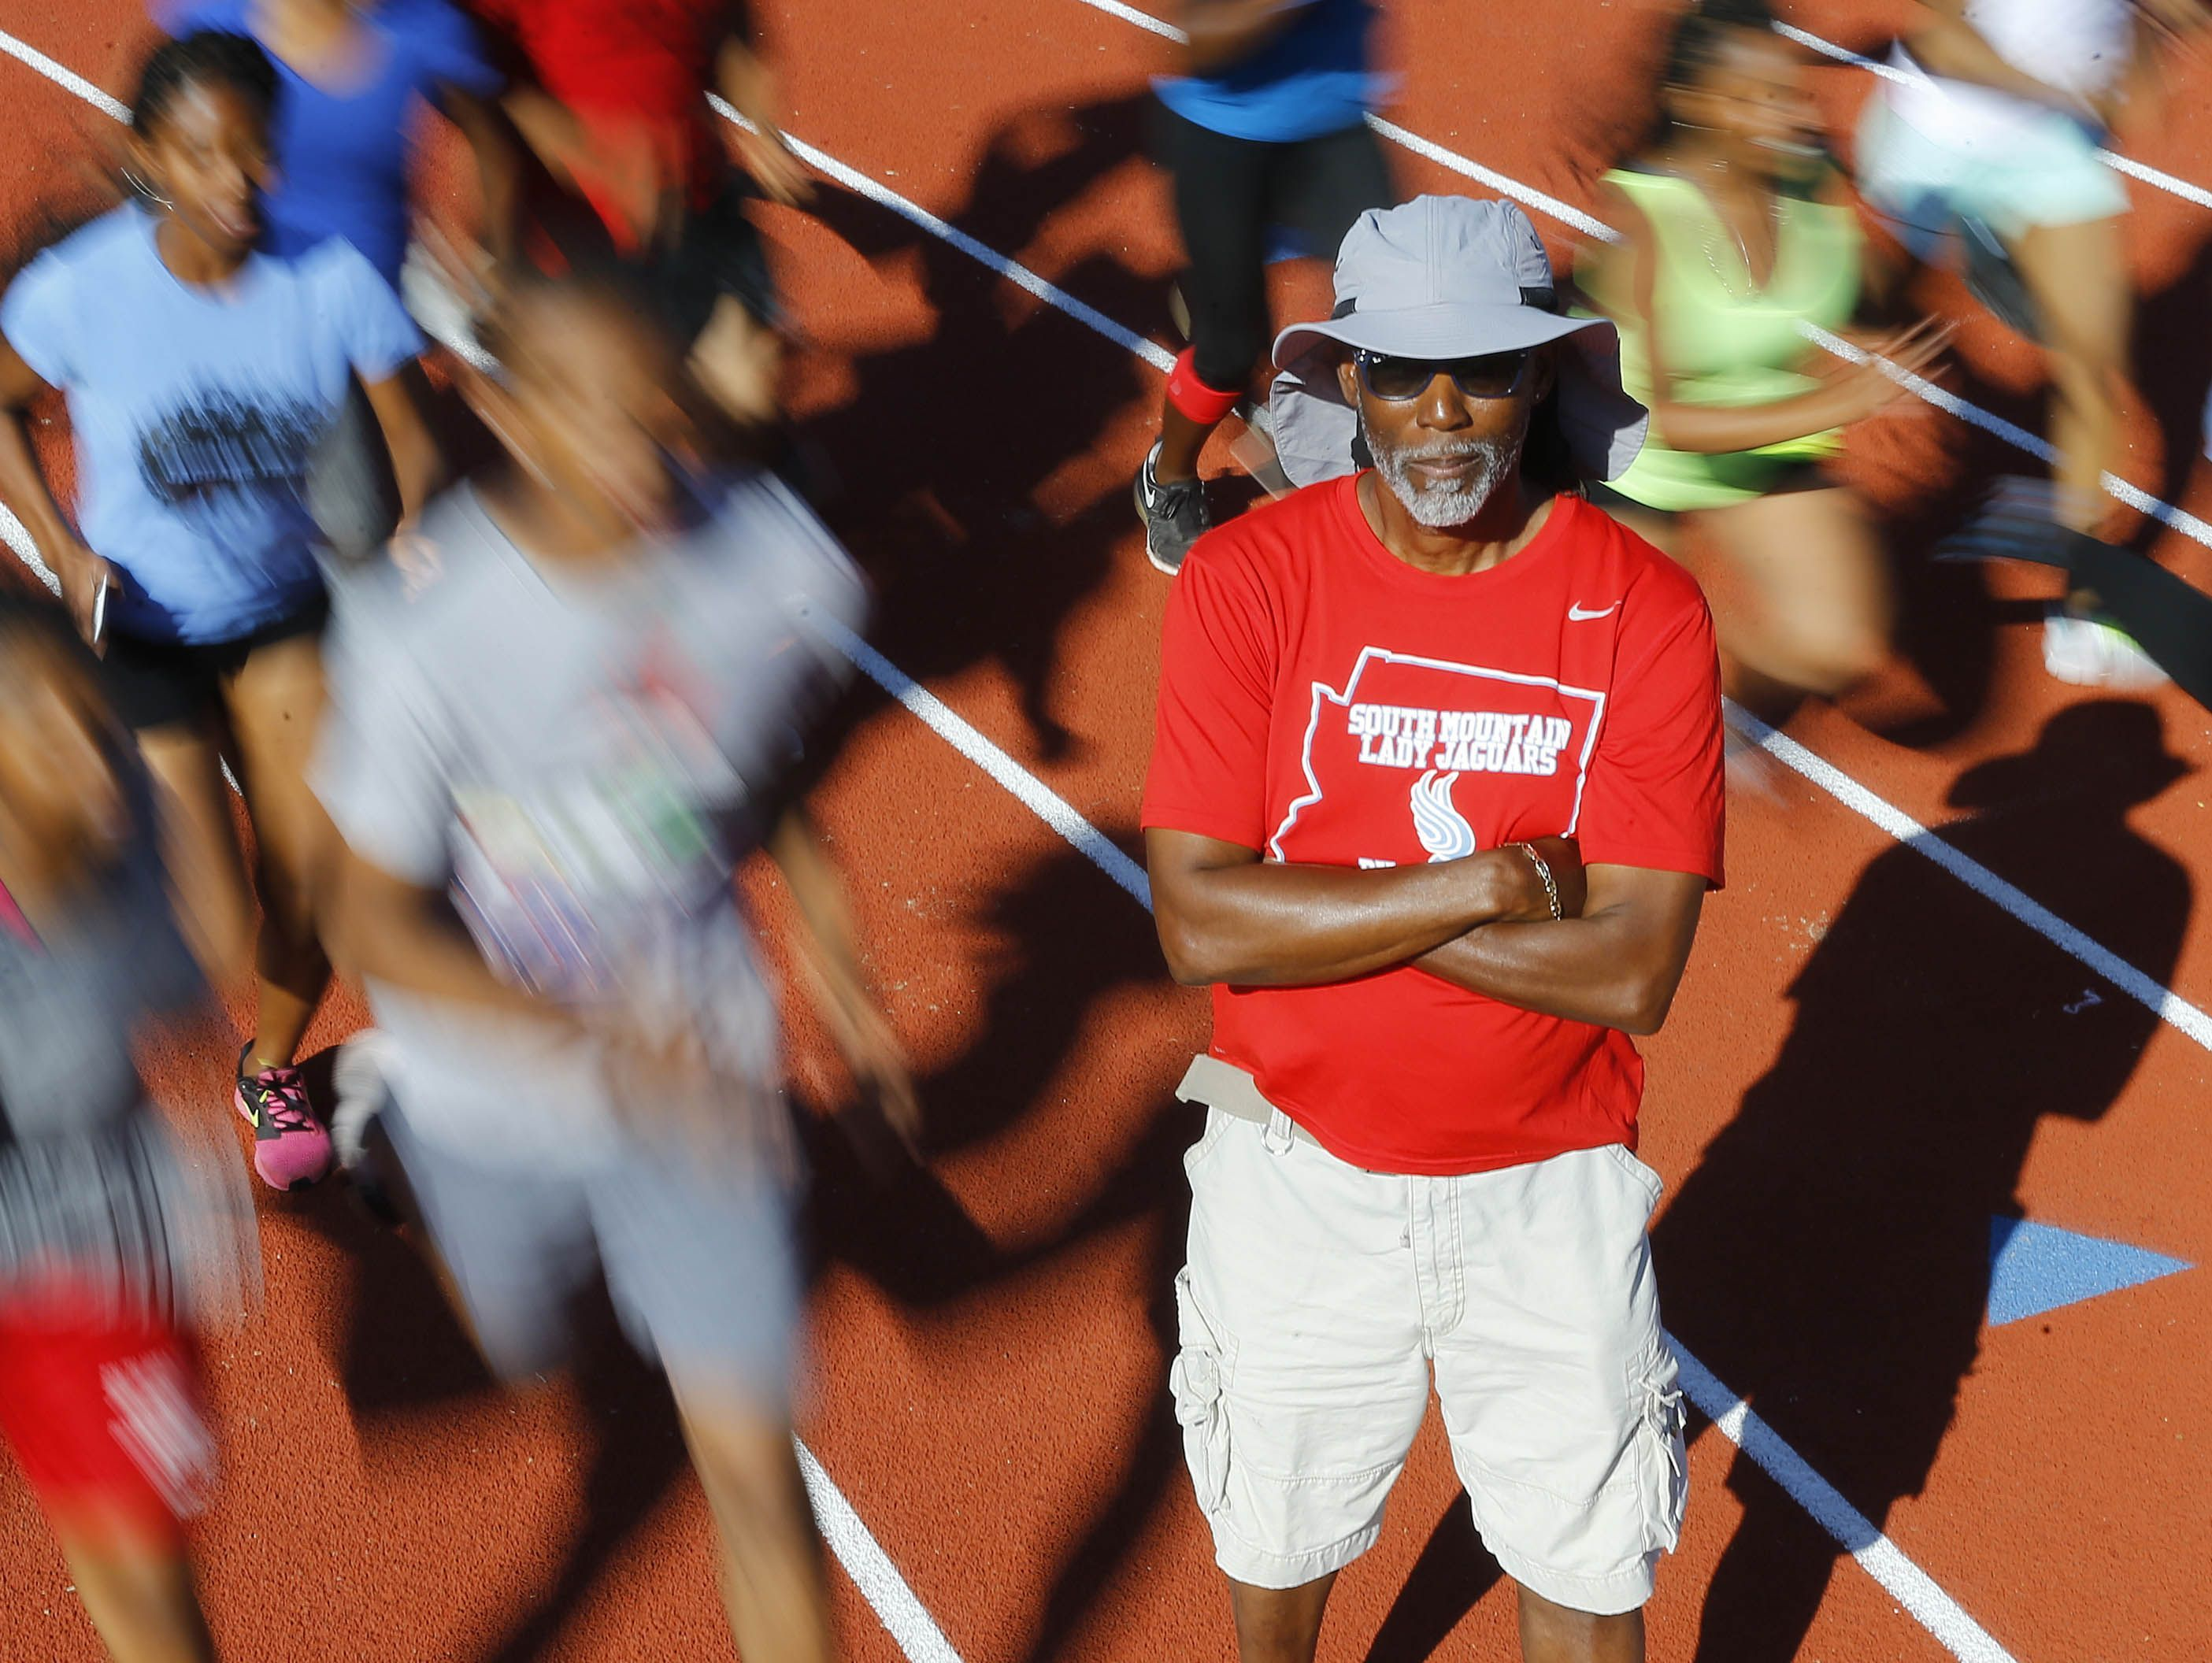 South Mountain track coach Dwayne Evans Tuesday, Mar. 21, 2017 in Phoenix, Ariz. Evans set a state record in the 200 in 1976 that still stands. He won an Olympic bronze medal that year right out of high school.